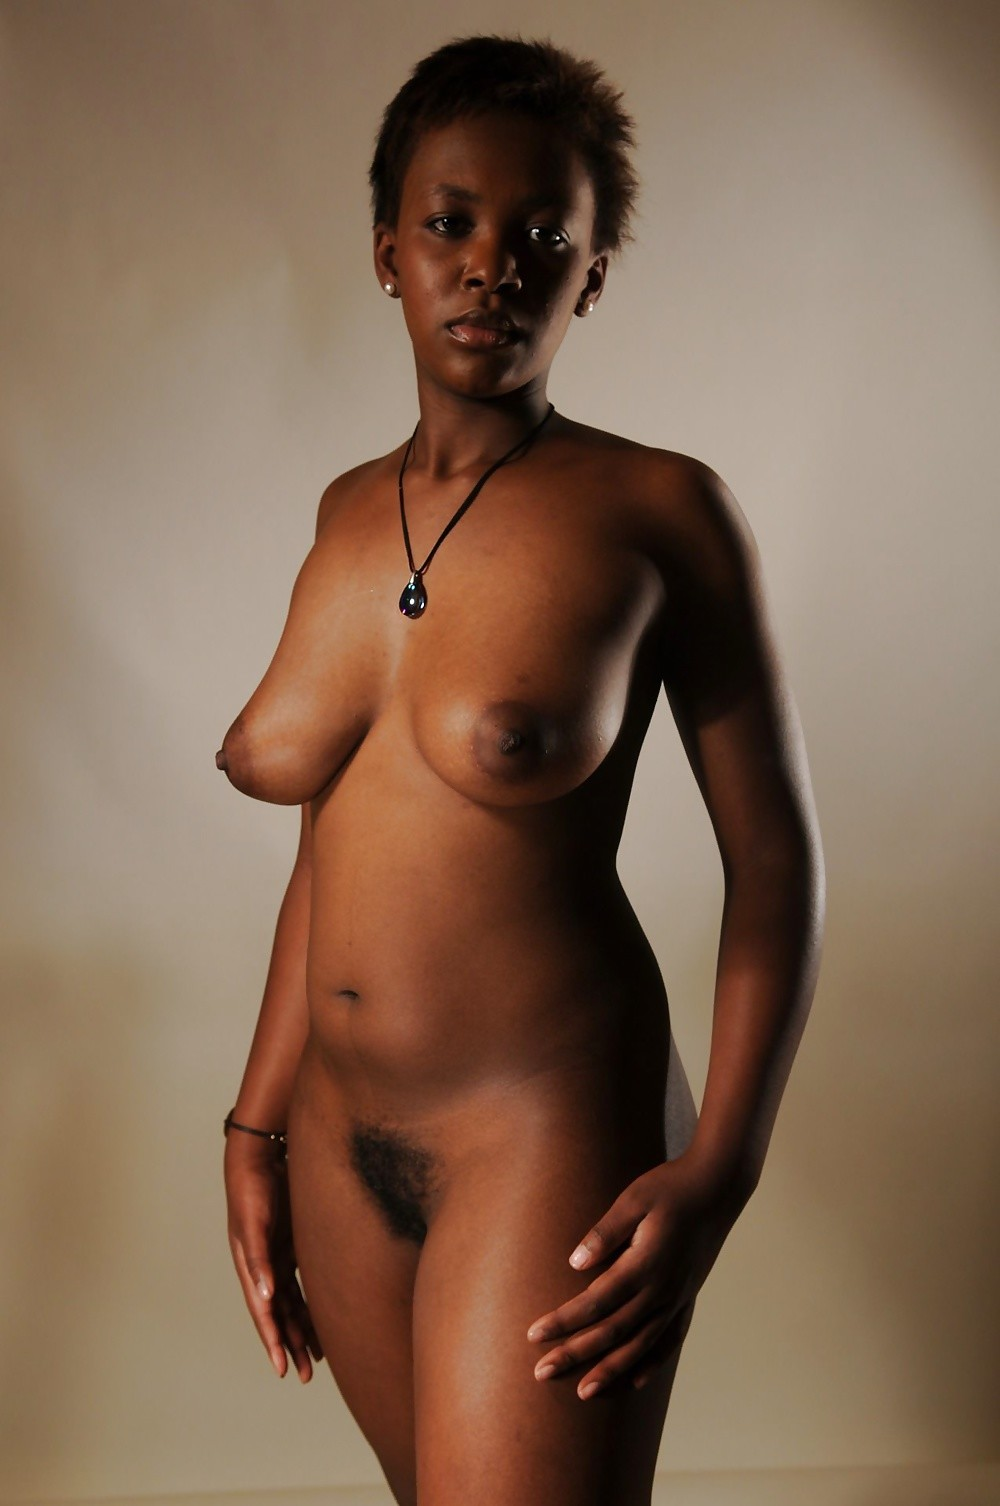 negro-women-nude-photos-no-face-women-naked